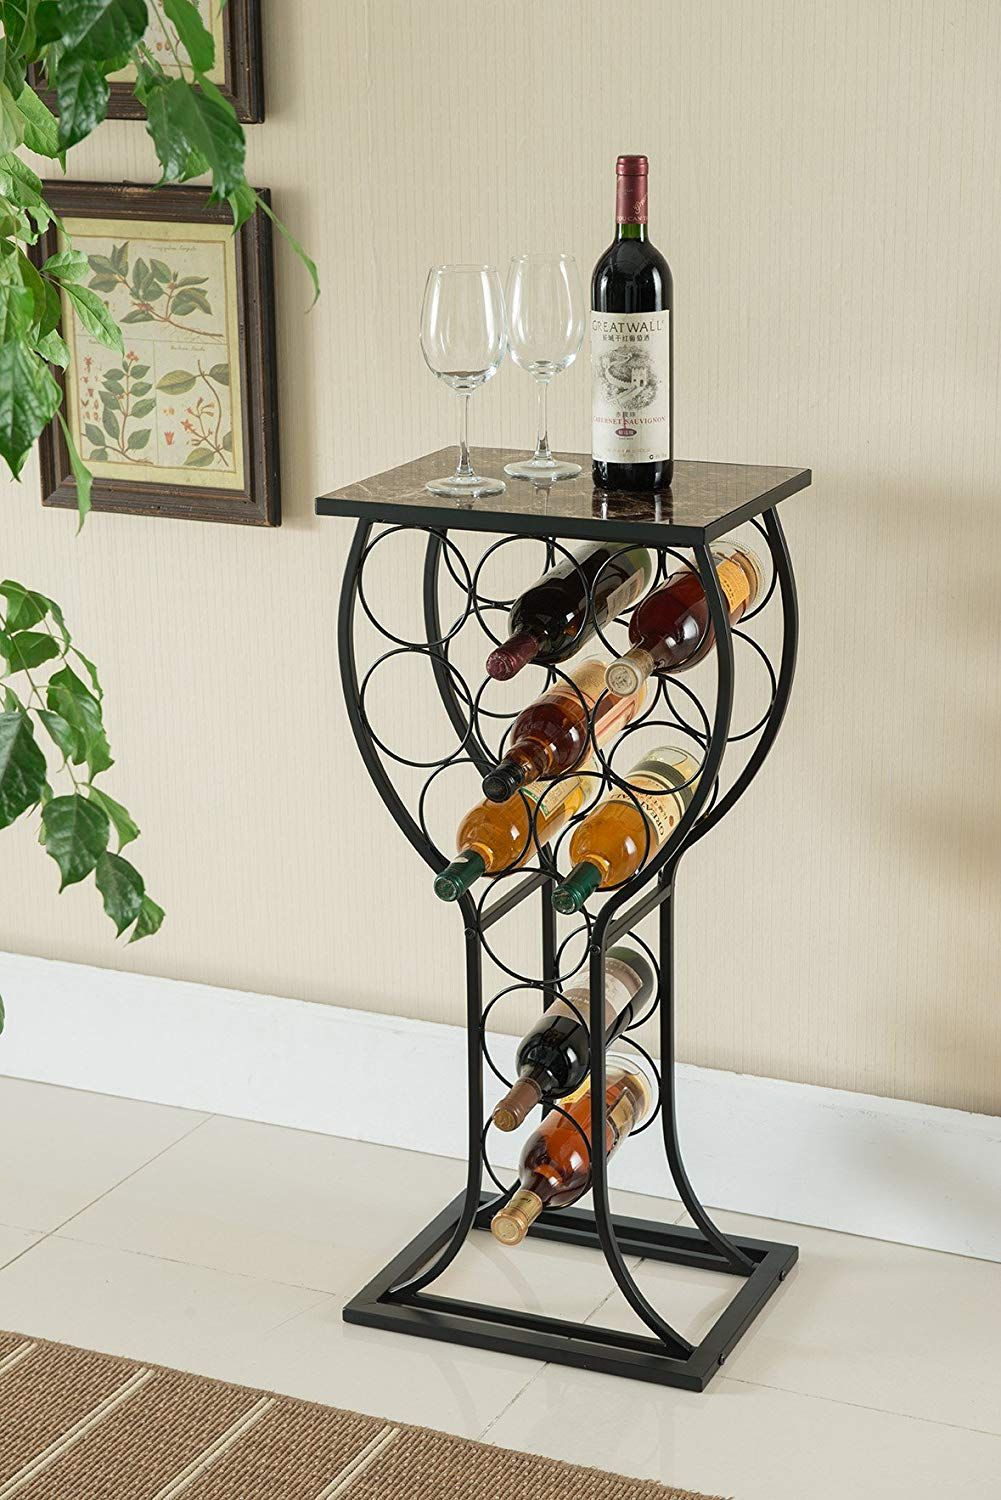 1570466149 321 the best wine rack tables for small and quirky spaces - The Best Wine Rack Tables for Small And Quirky Spaces